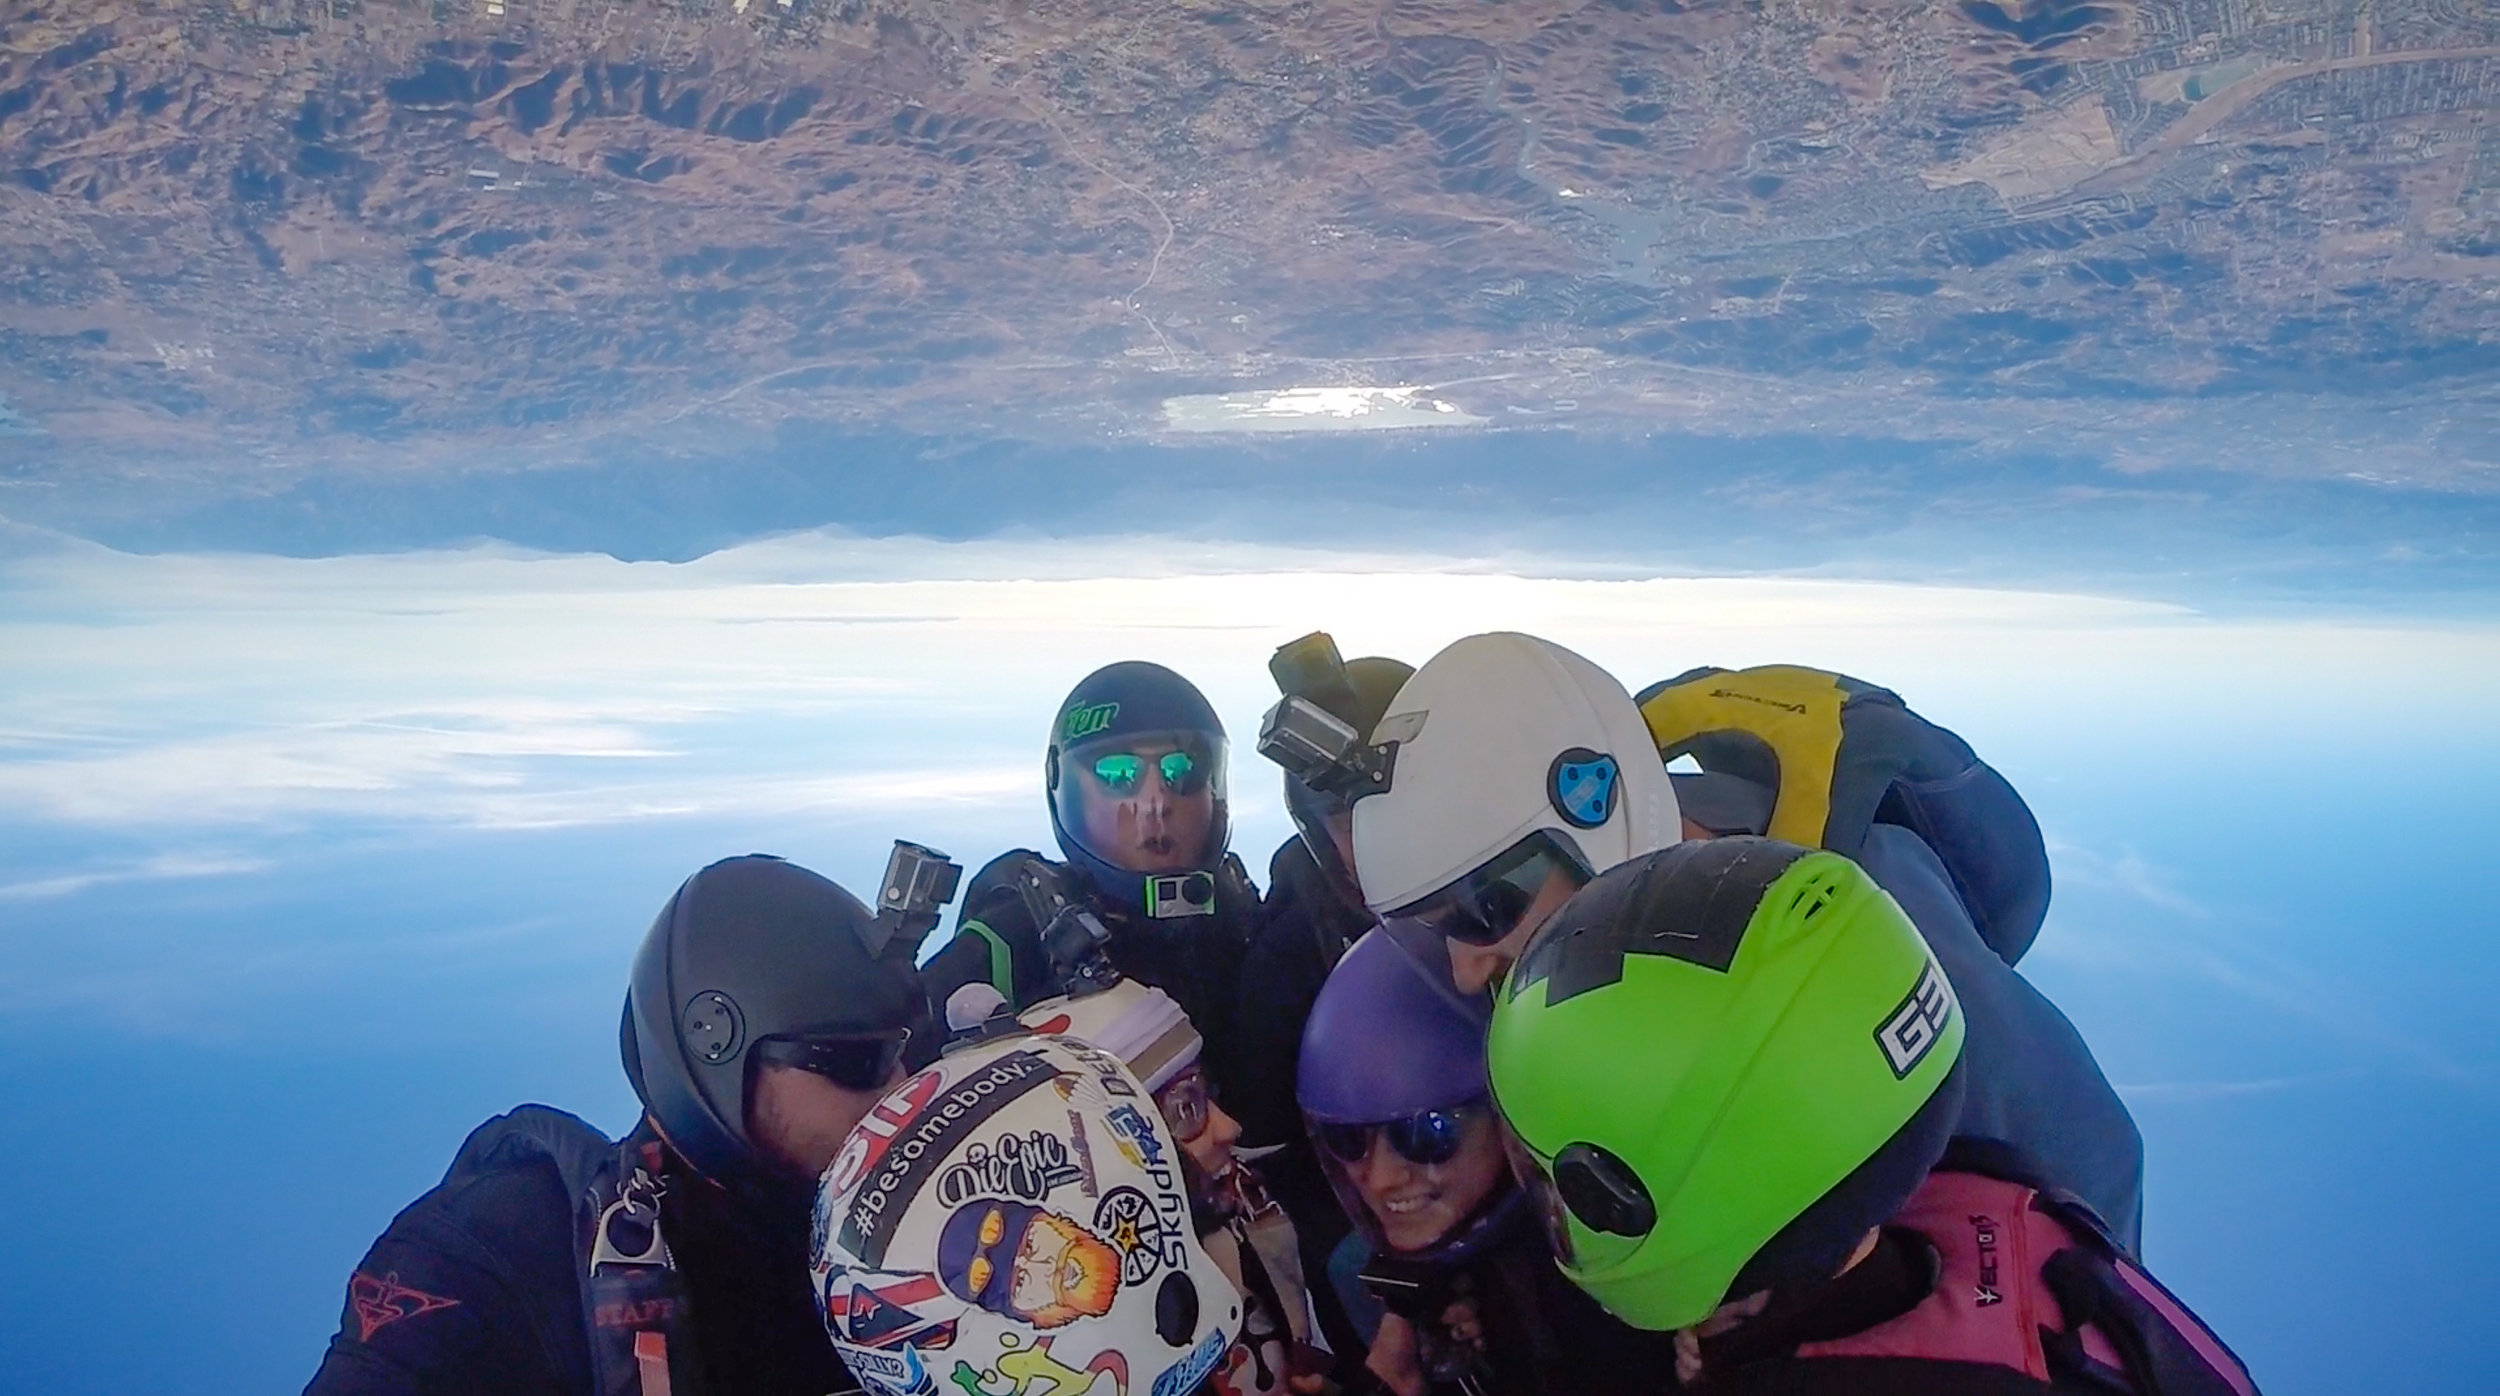 Upside down team huddle at 12,500 ft in the air.